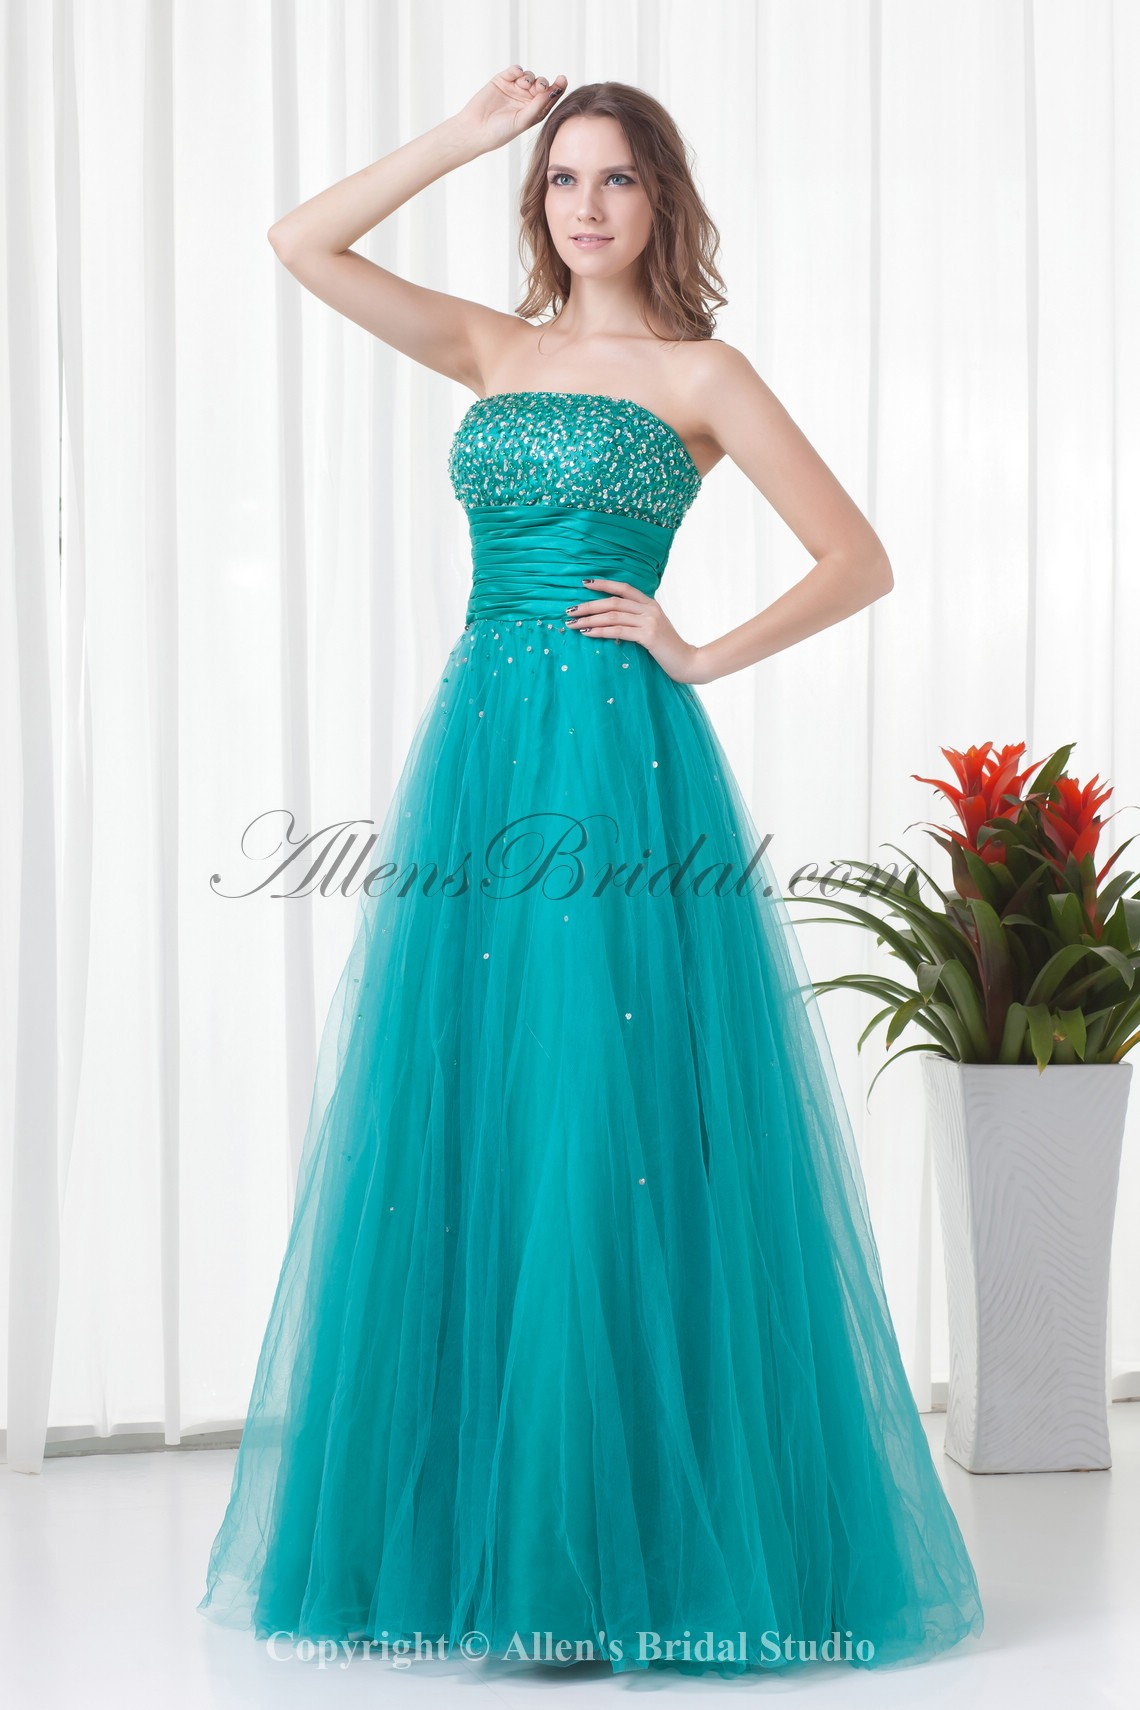 /323-2582/satin-and-net-strapless-a-line-floor-length-sequins-prom-dress.jpg